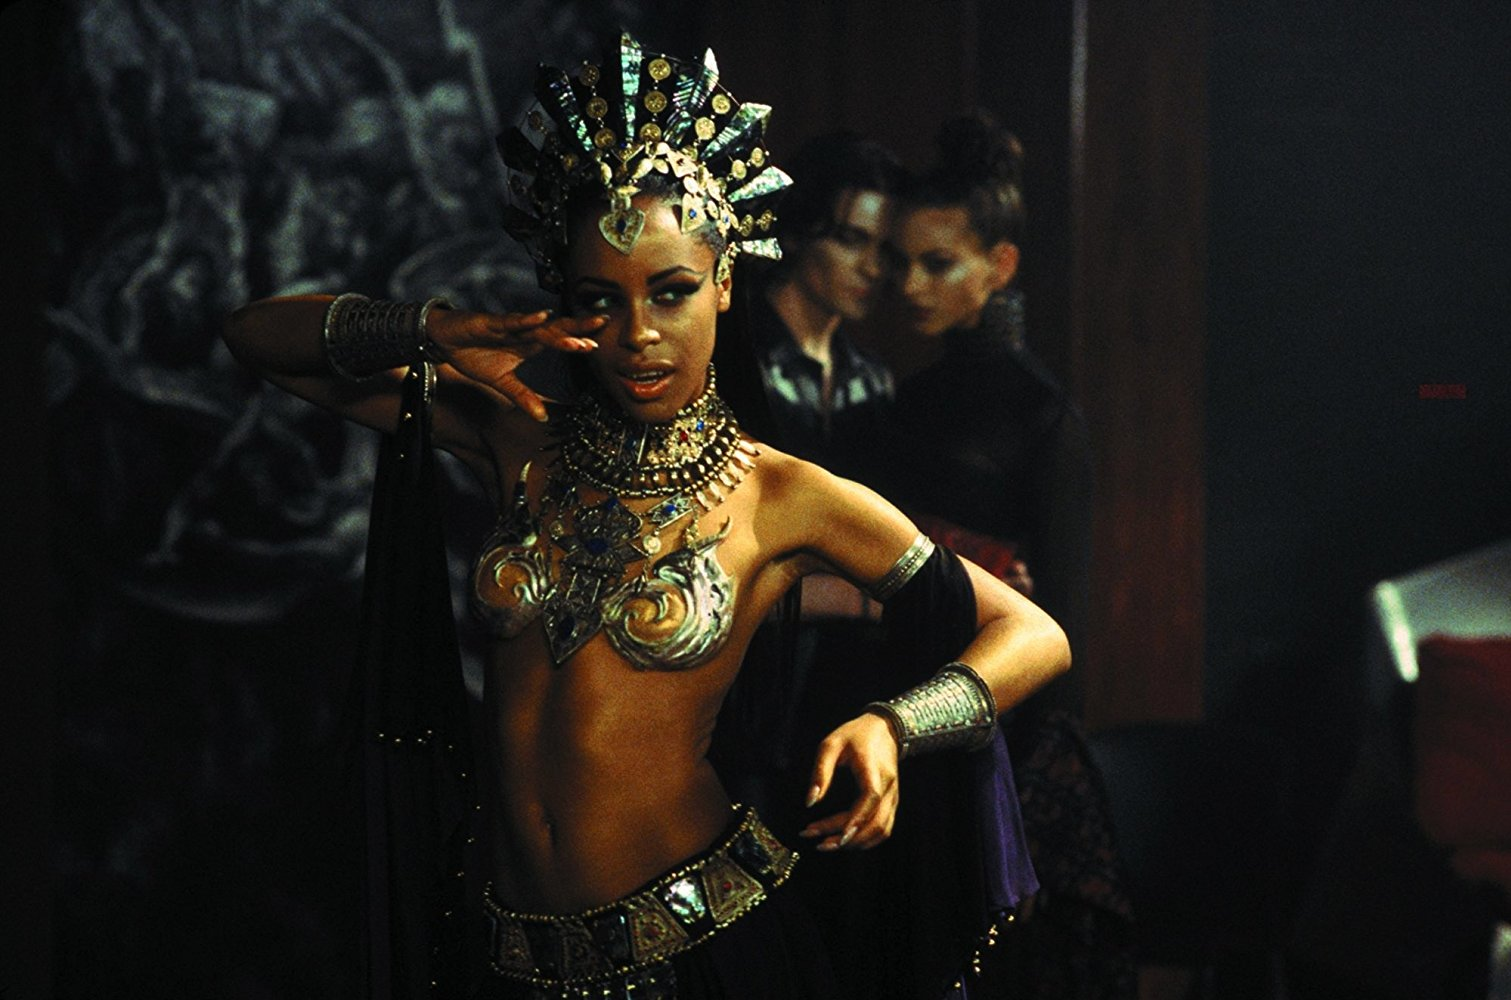 Aaliyah as Akashah, Queen of the Damned (2002)